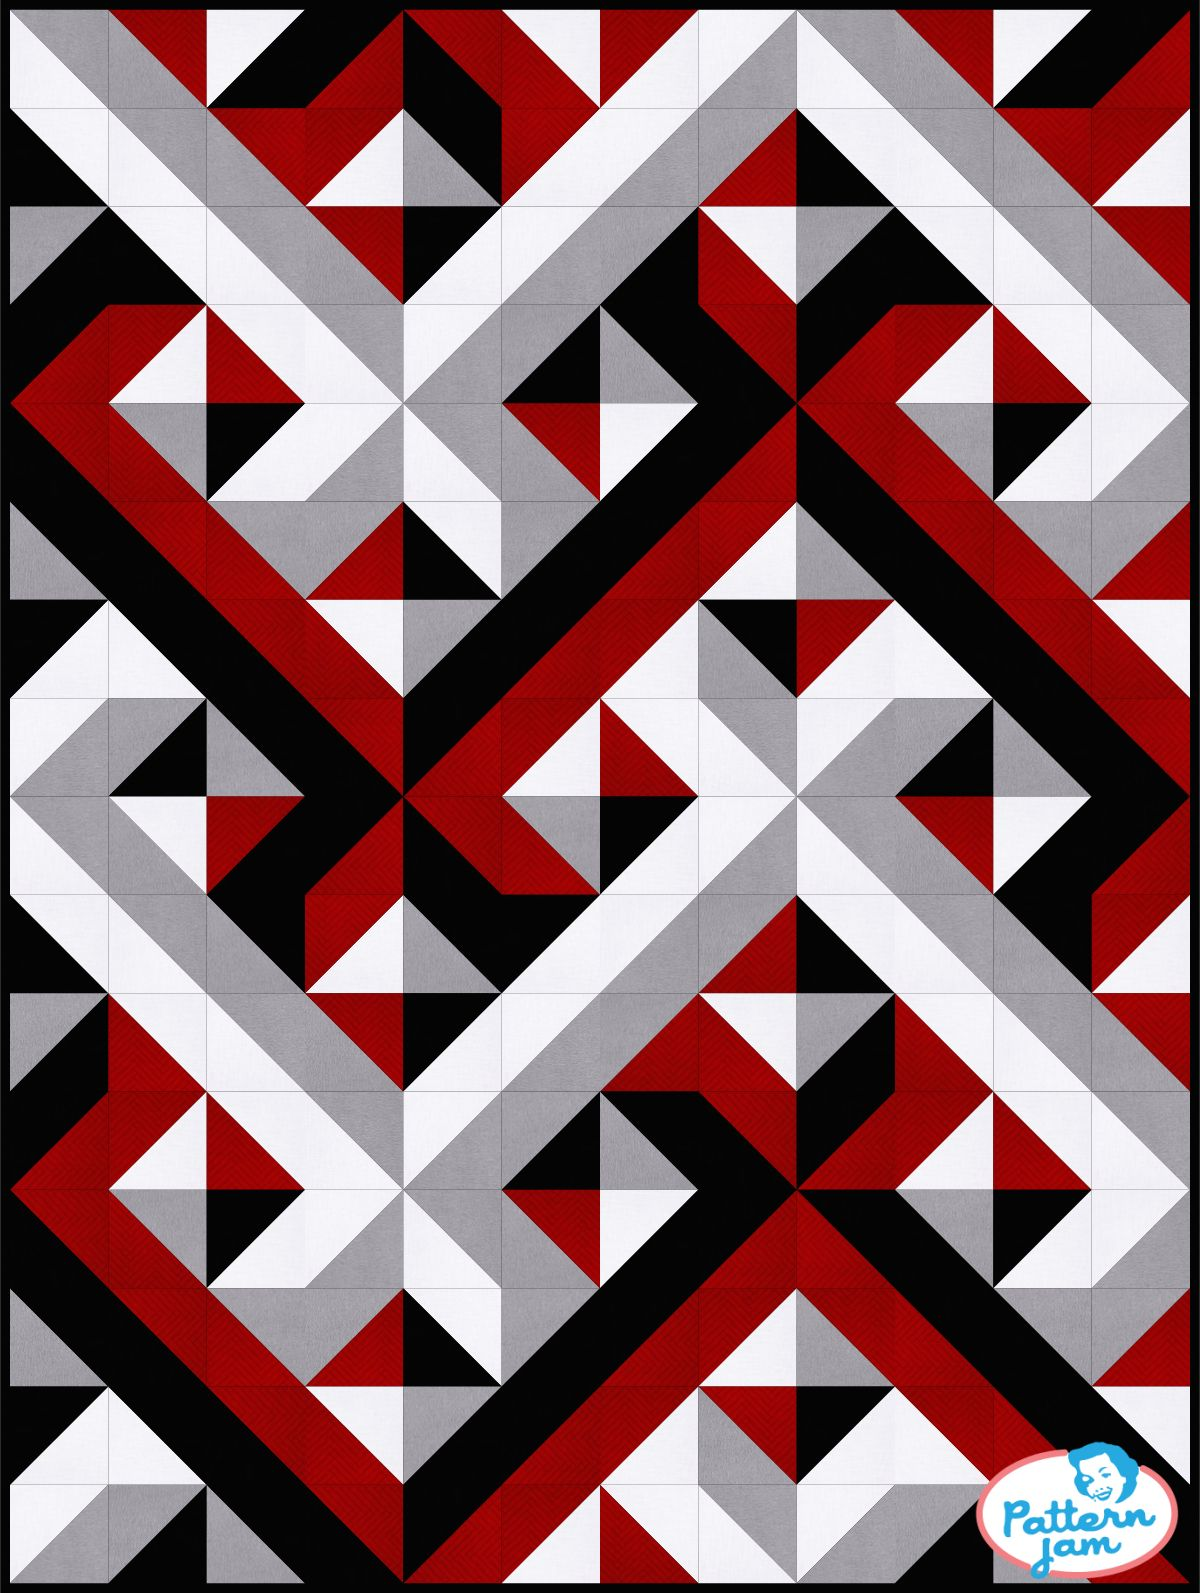 Red And Black Quilt Patterns : black, quilt, patterns, Black, Interwoven, Geometric, Quilt,, Custom, Quilts,, Optical, Illusion, Quilts